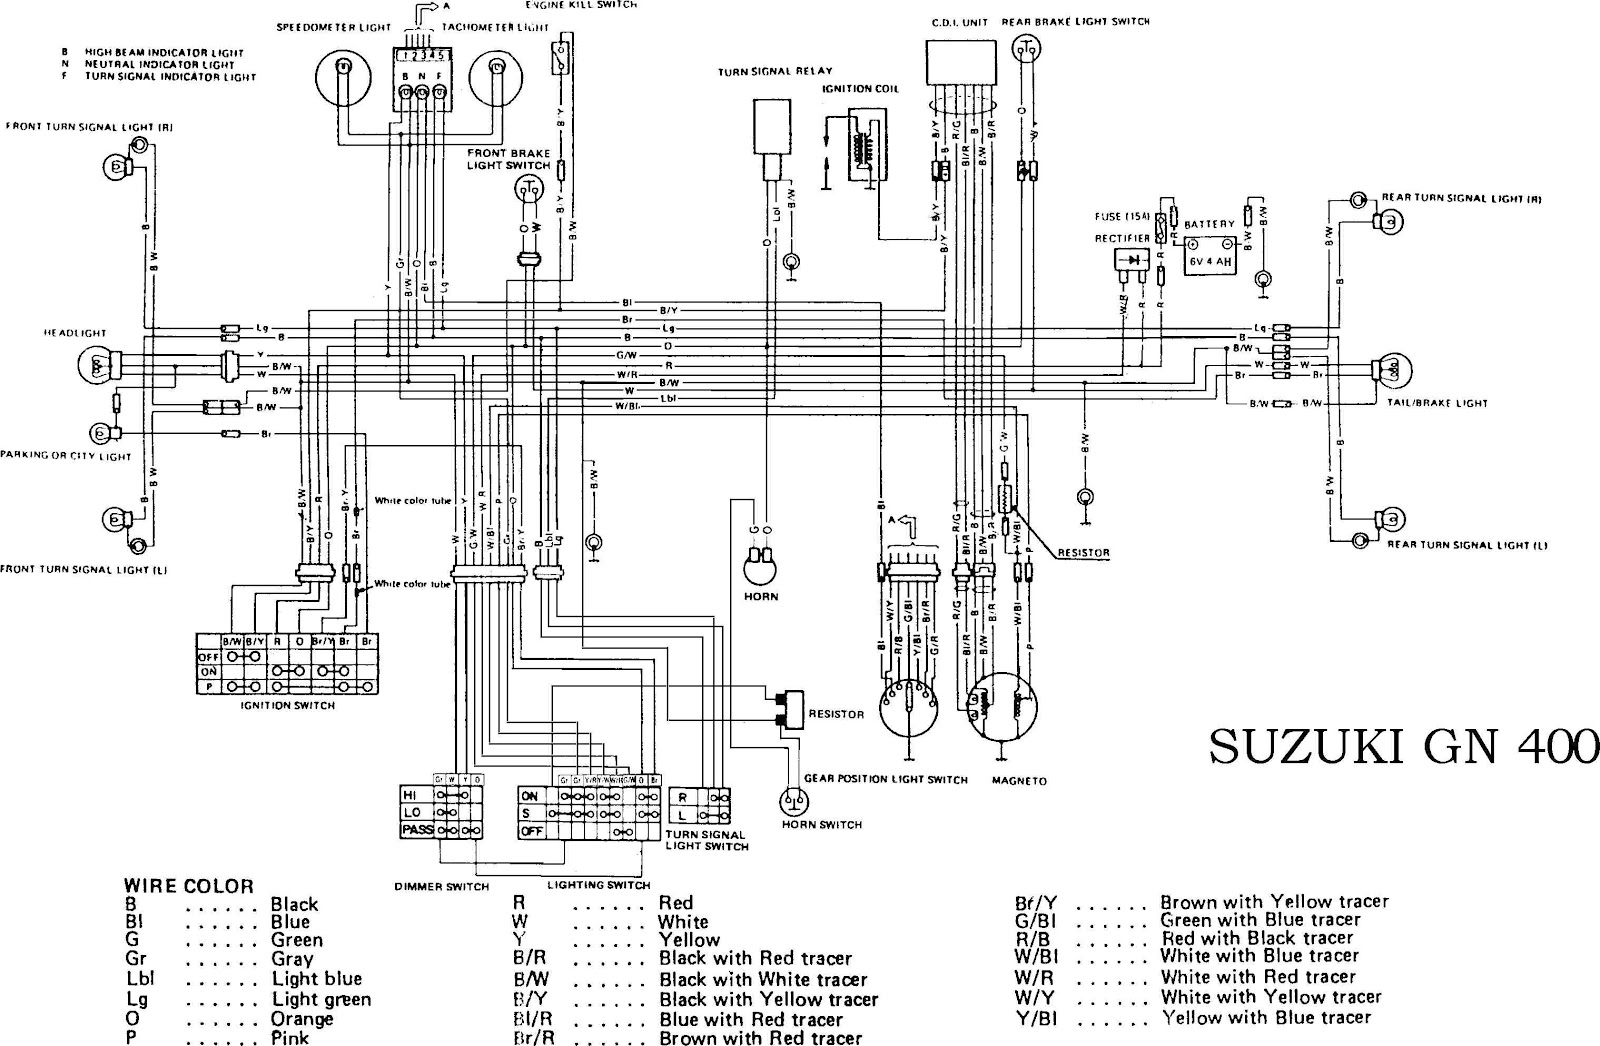 Suzuki+GN400+motorcycle+Complete+Electrical+Wiring+Diagram?resize\=665%2C435 suzuki gn 125 wiring diagram suzuki 125 three wheeler \u2022 wiring suzuki lt80 wiring diagram at reclaimingppi.co